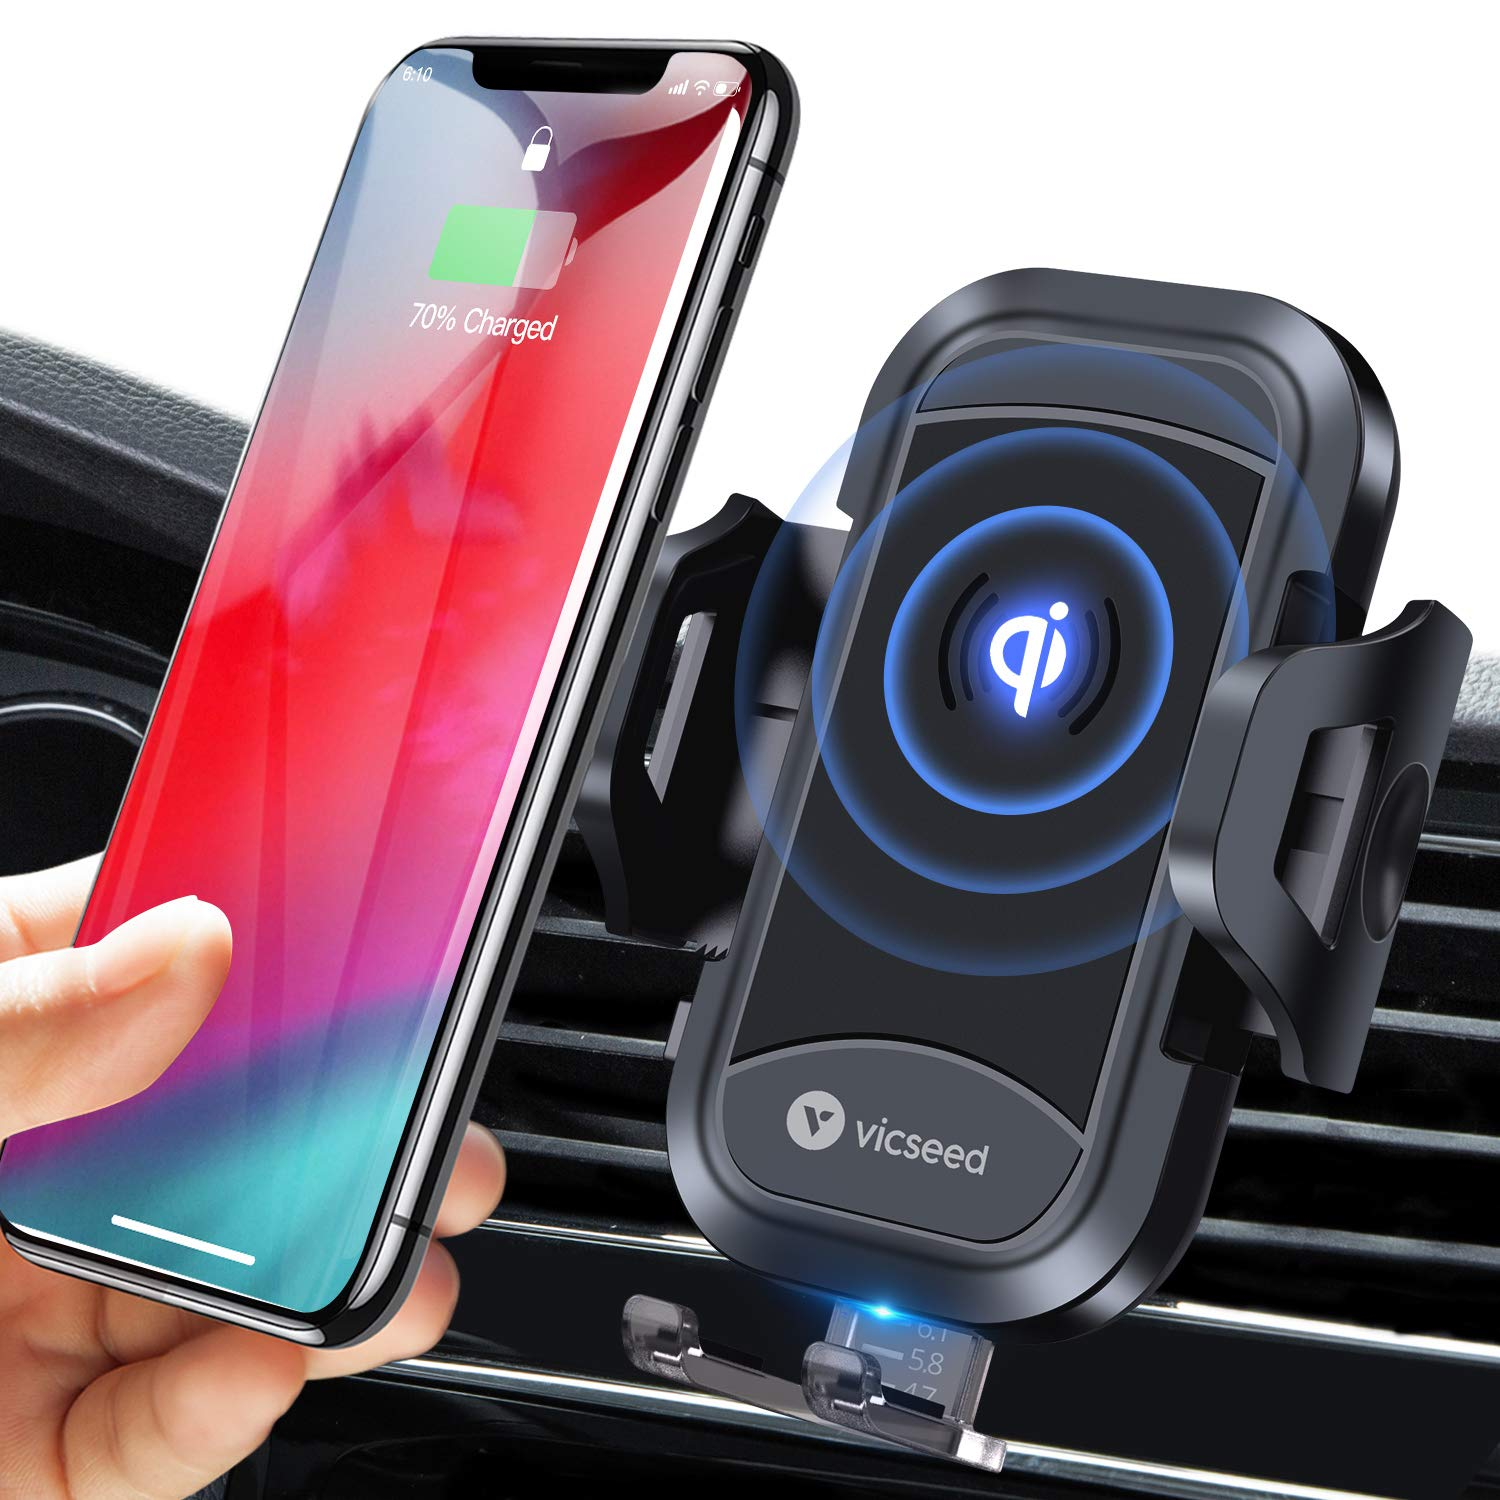 VICSEED Wireless Car Charger Mount Fast Charging Qi Wireless Car Charger 7.5W 10W Qi Car Charger Air Vent Phone Holder for Car Mount Fit for iPhone 11 Pro Max XS Max X 8 Plus XR Samsung Note10 S10 S9 by VICSEED